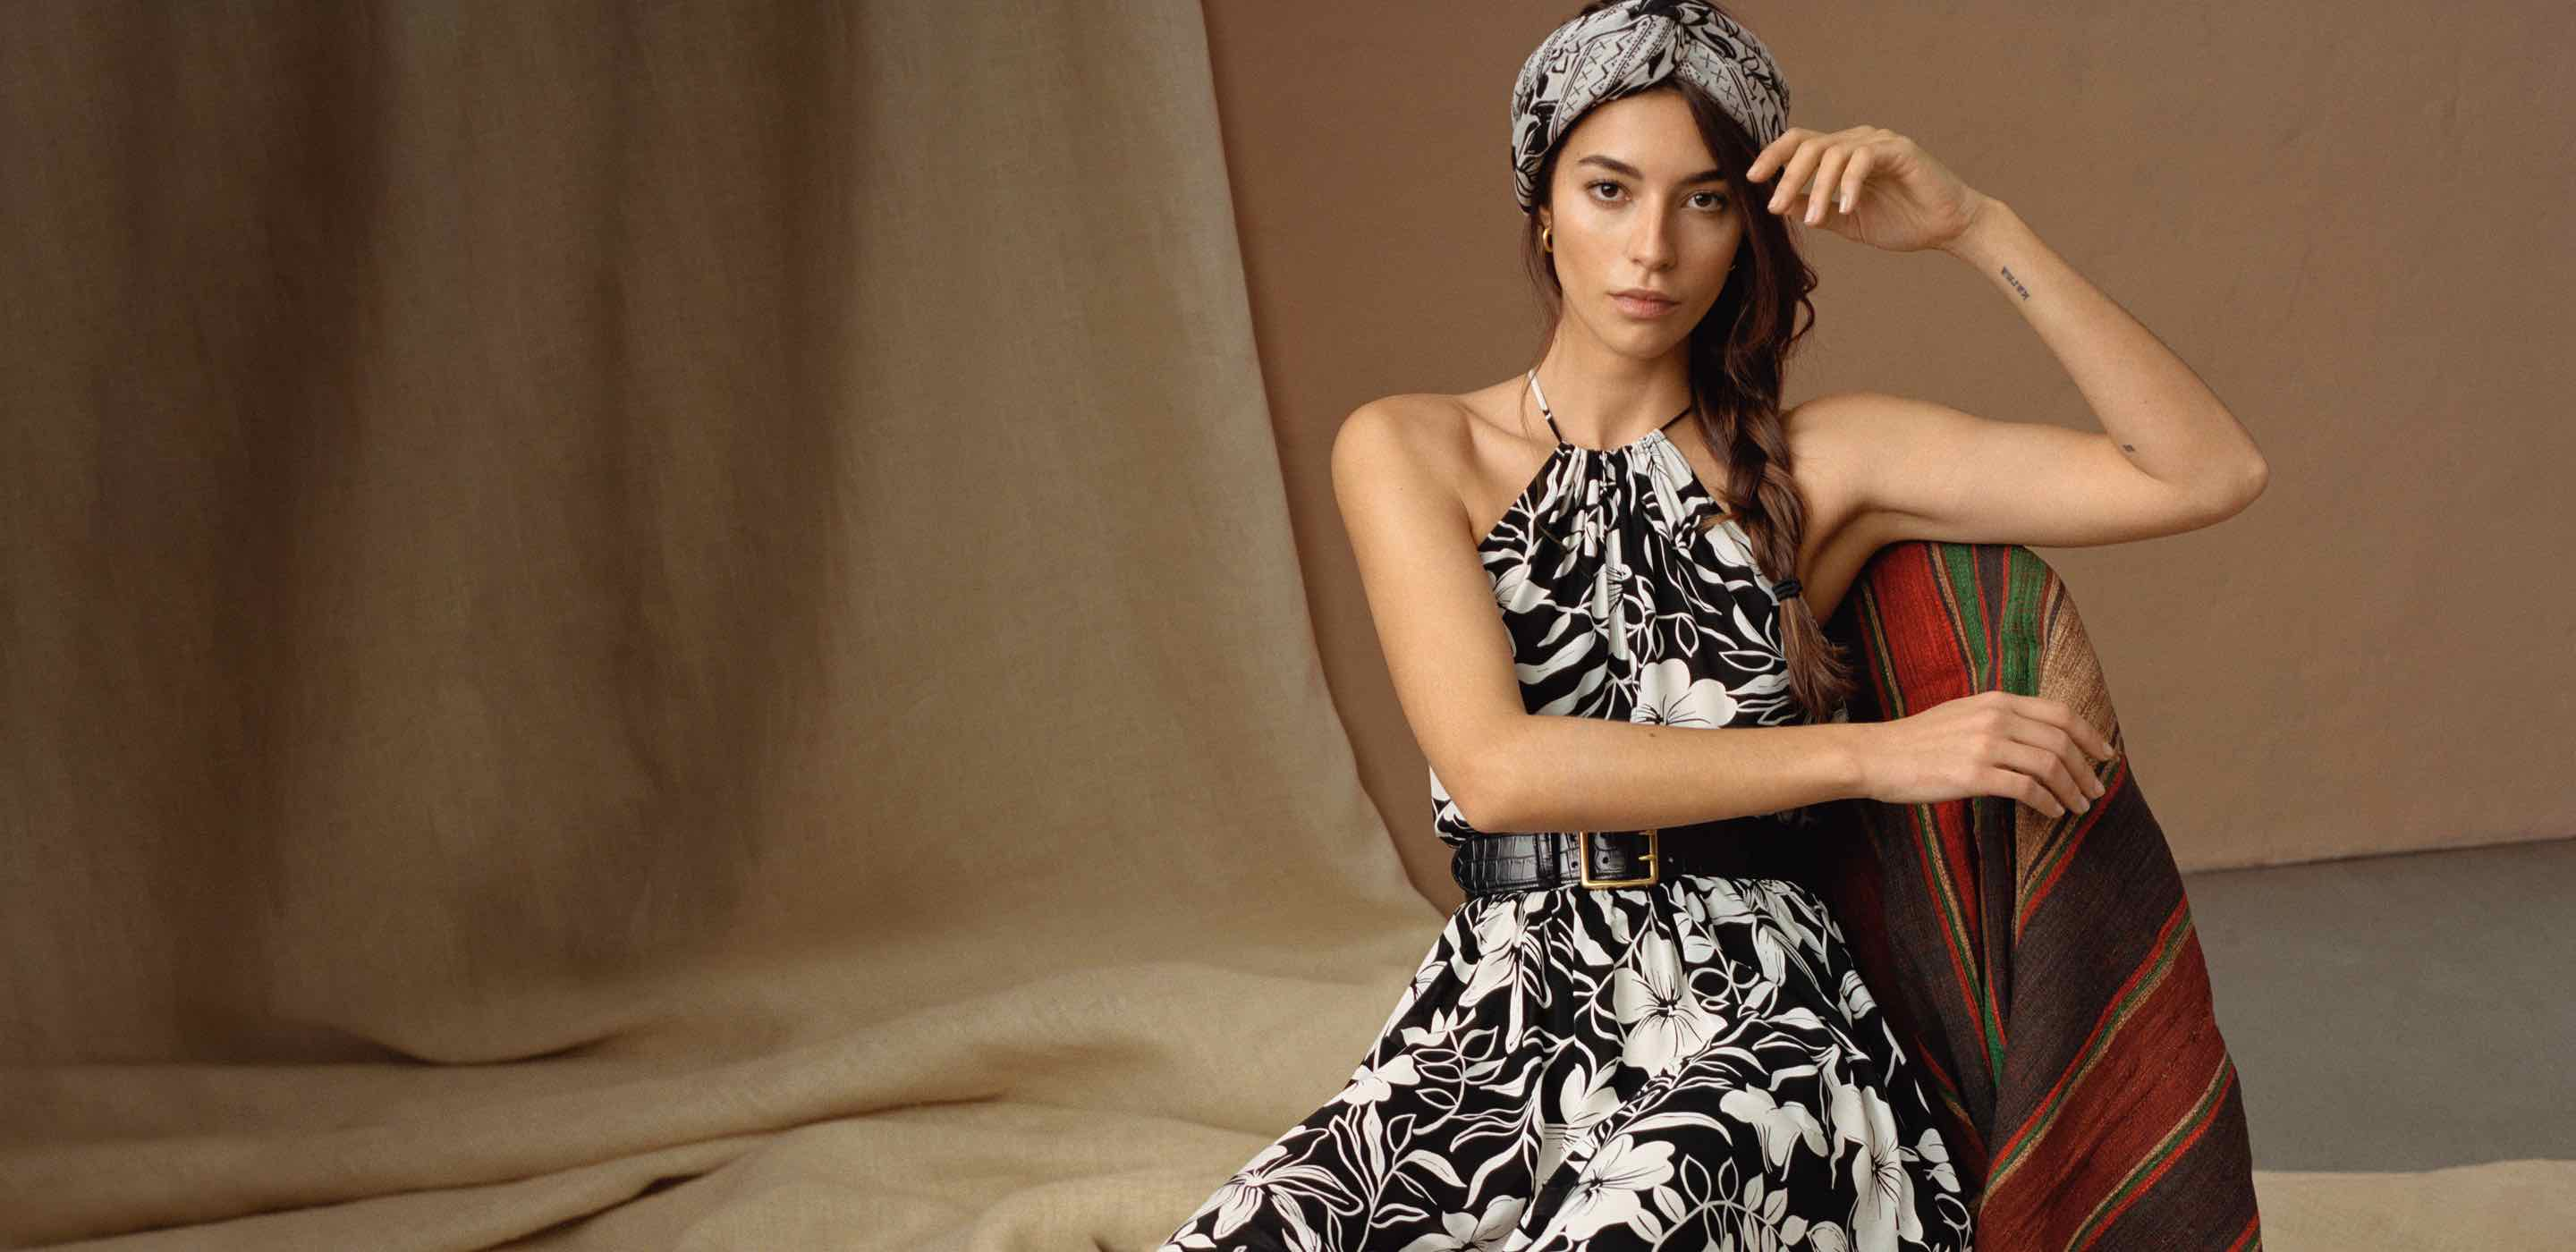 Woman wears black-and-white floral halter dress.